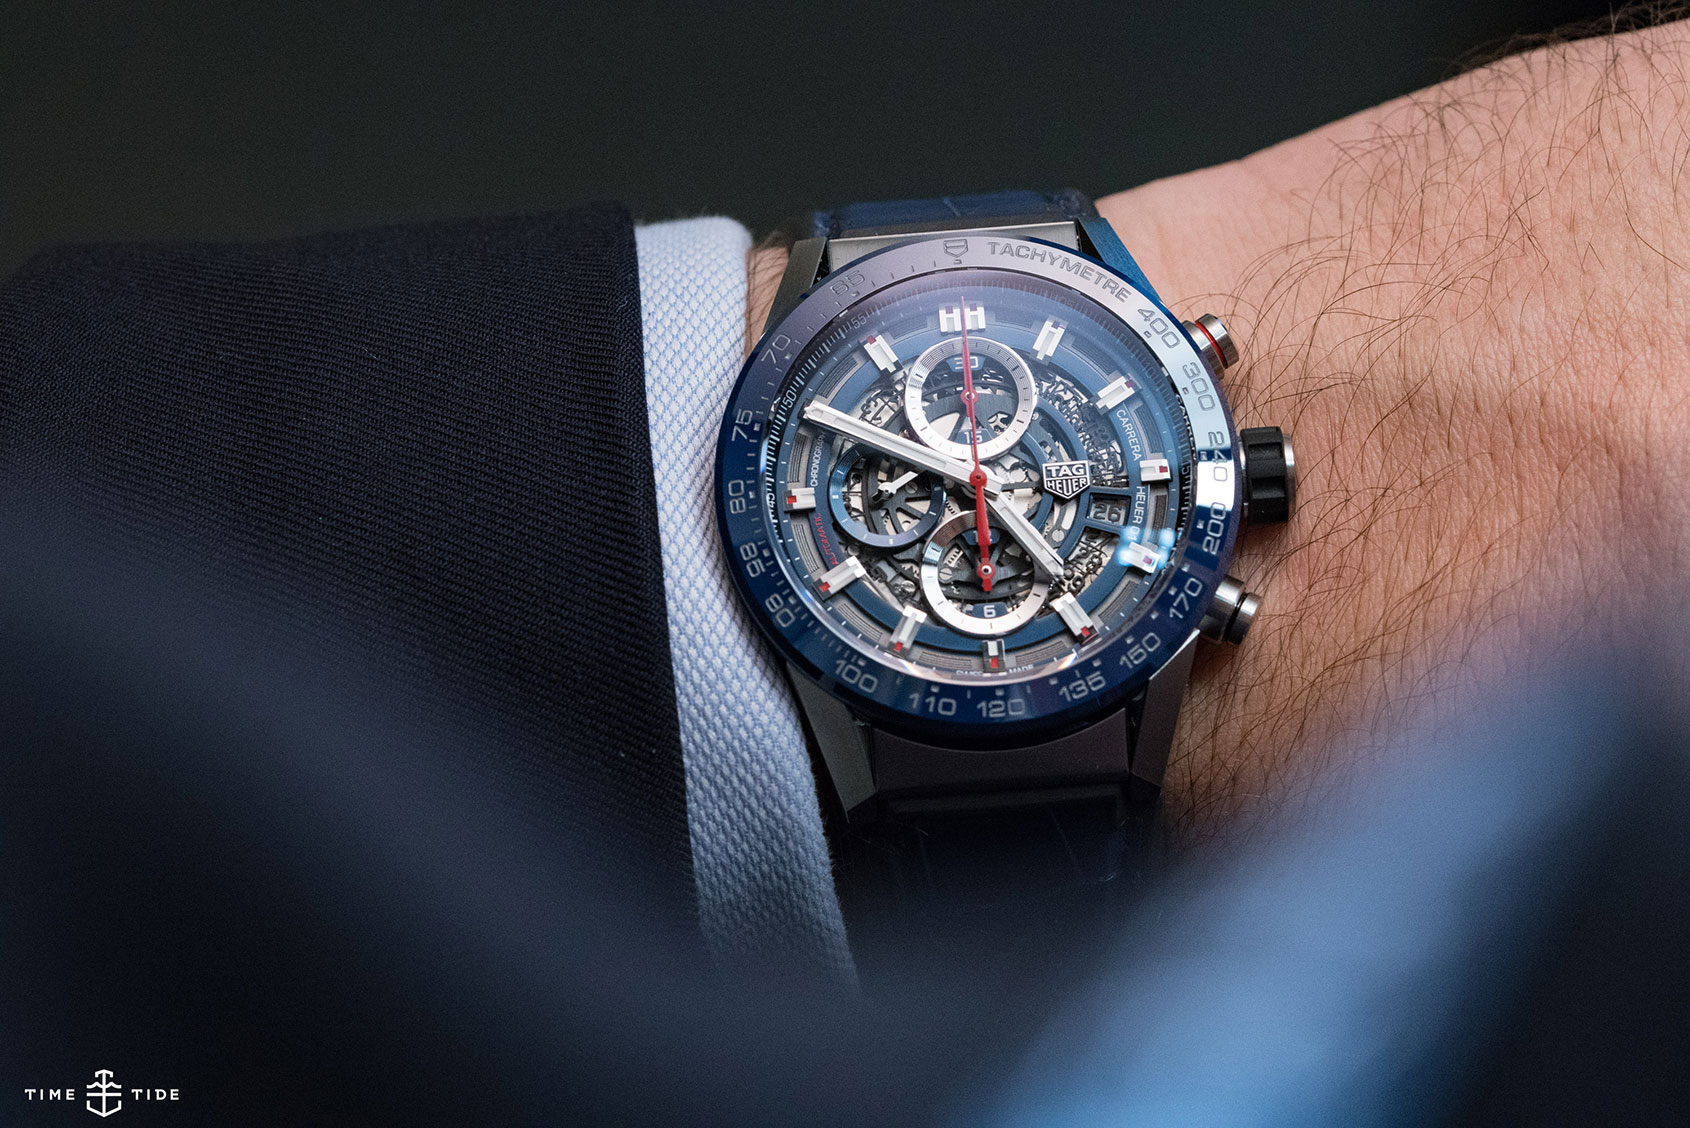 A slightly smaller statement watch, the TAG Heuer Carrera Heuer 0143mm